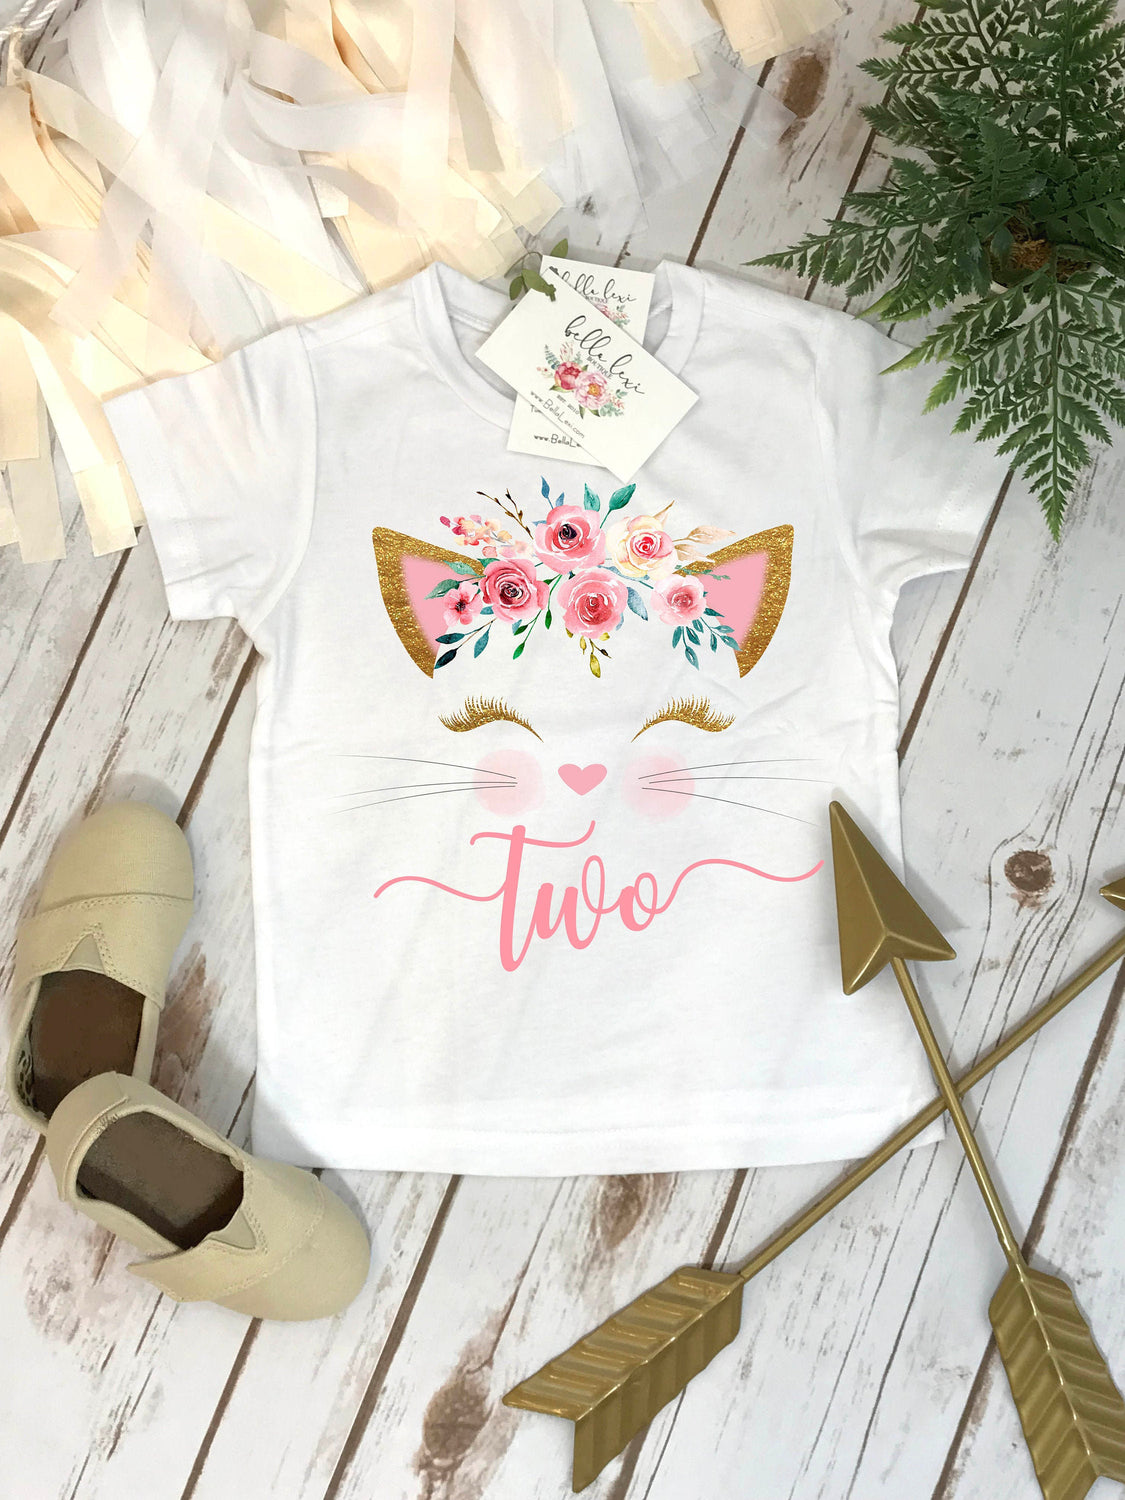 2nd Birthday Shirt, Kitten Birthday, Kitty Birthday shirt, Custom Birthday, Cat Birthday, Cat Shirt, Second Birthday, Girl Birthday Set, Cat